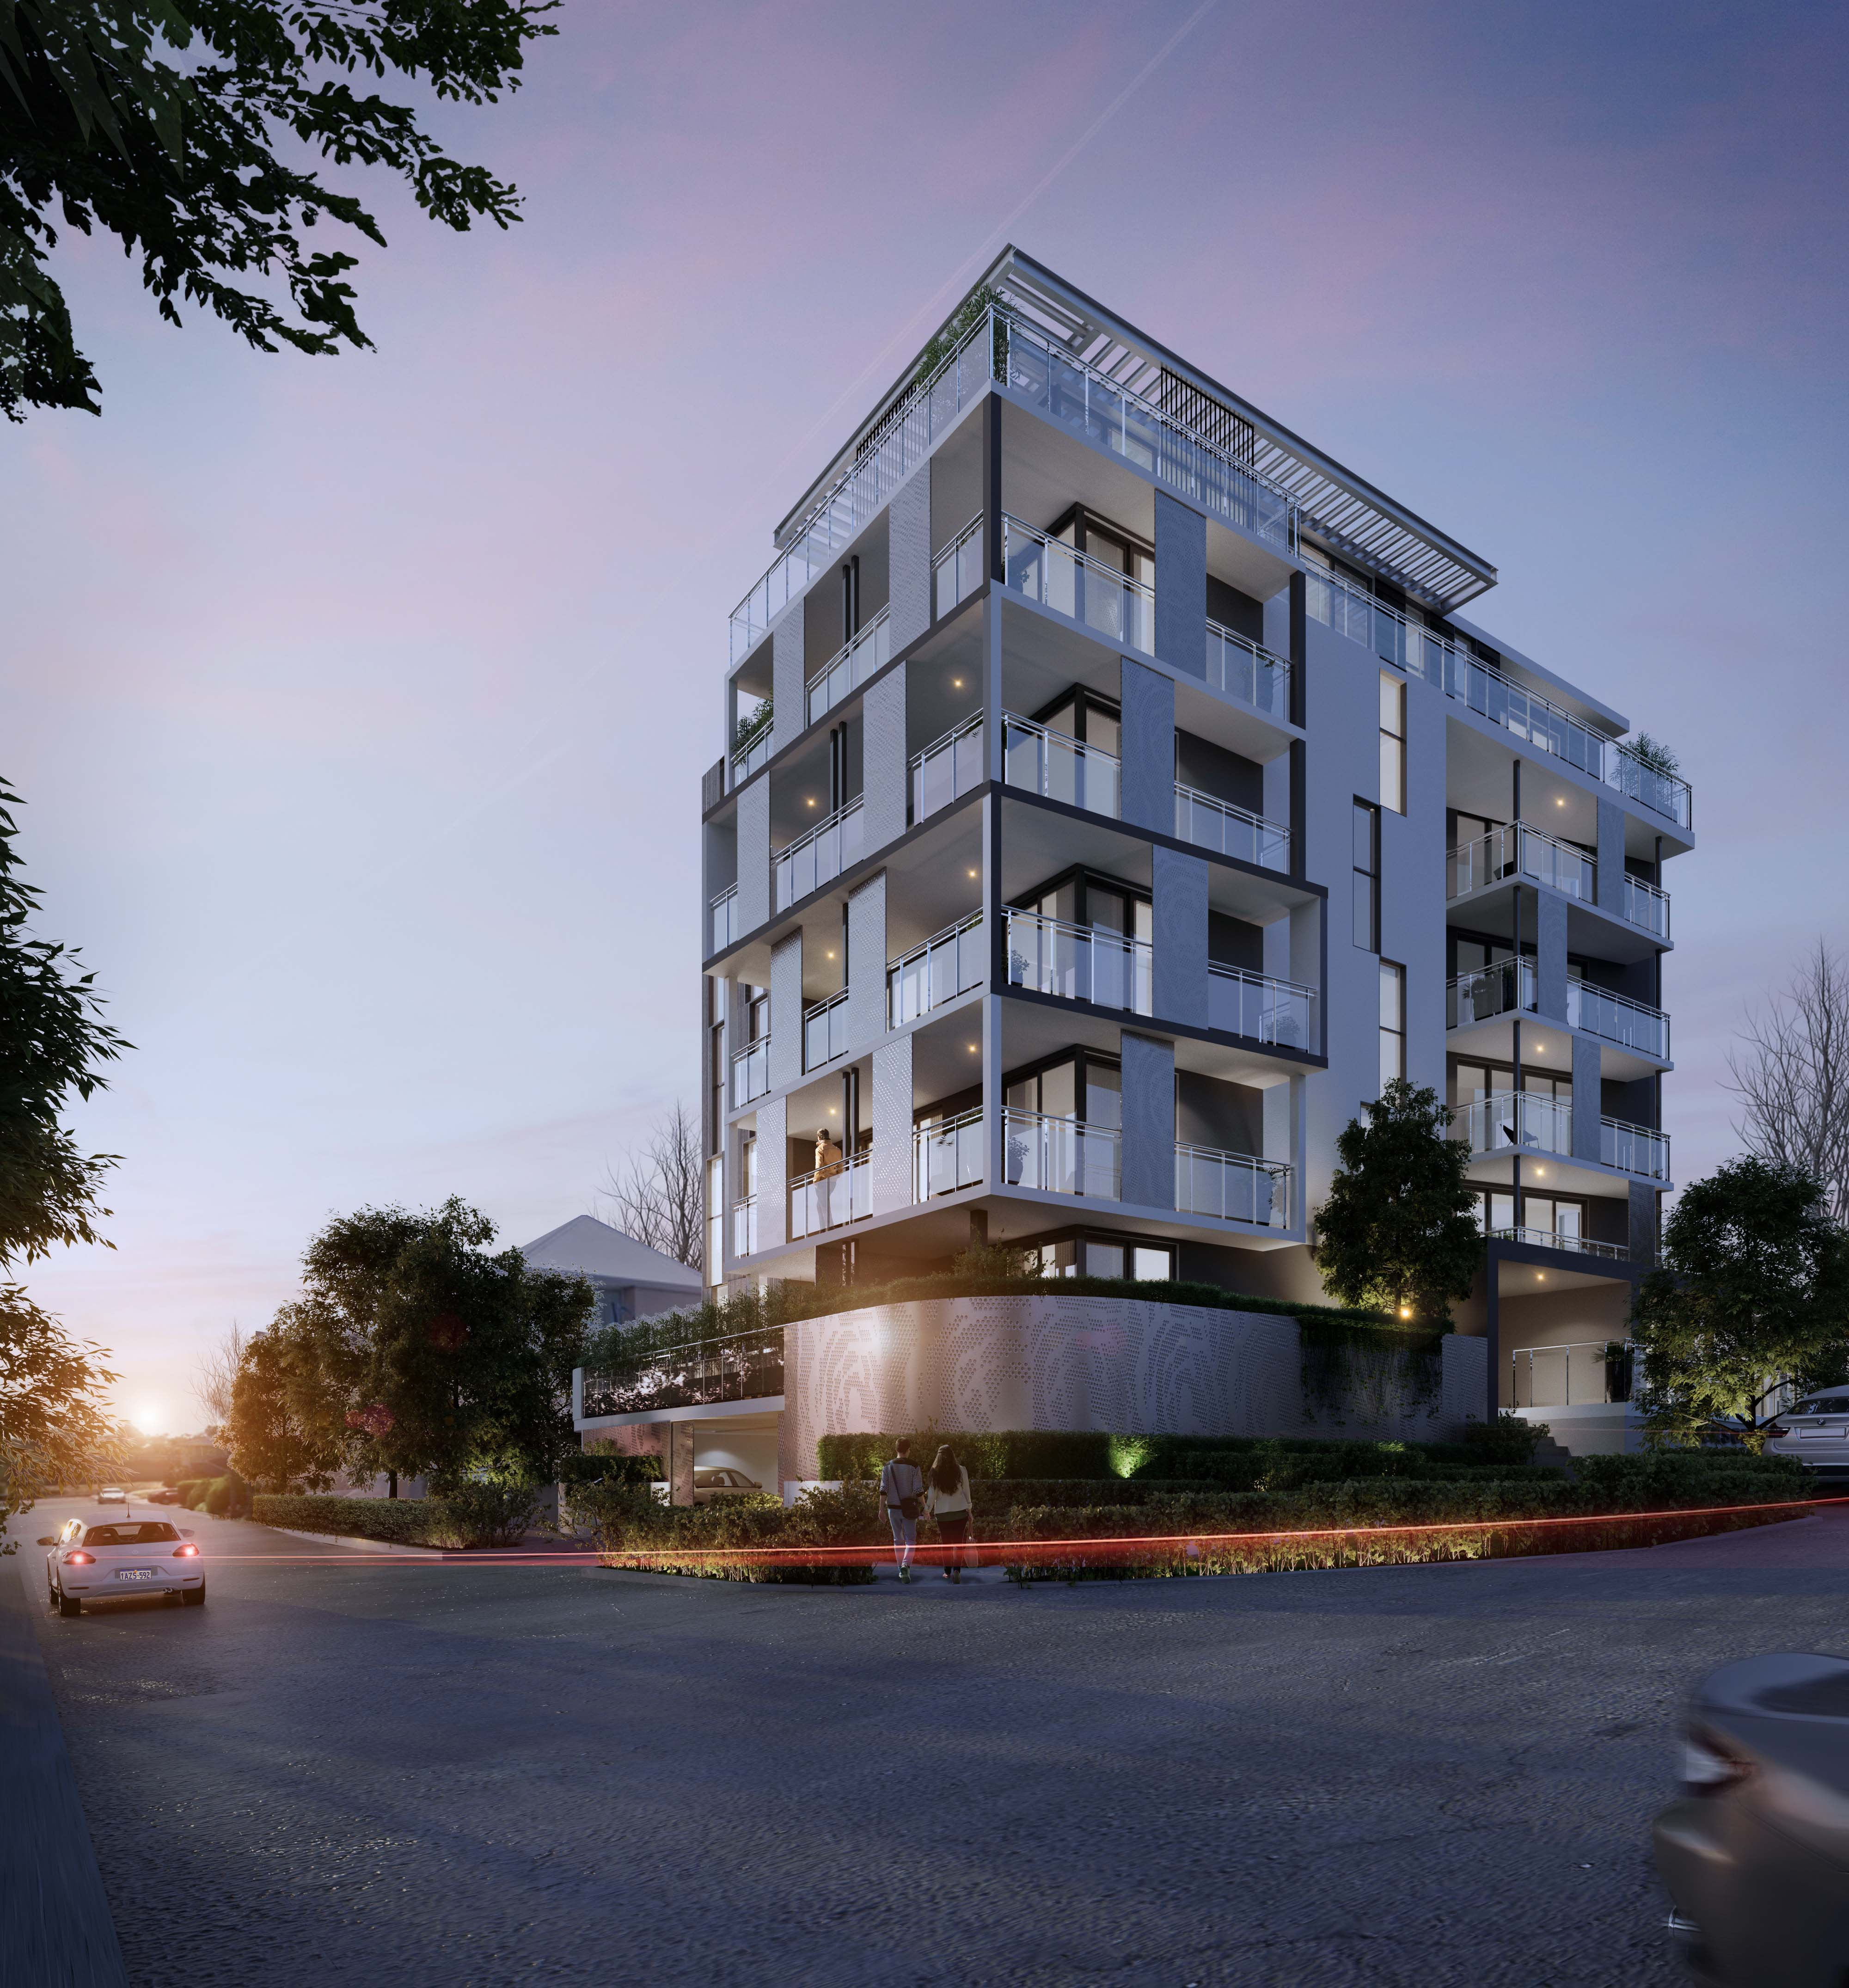 2_-_Exterior_-_Street_View_Dusk_-_Low_Res[1]